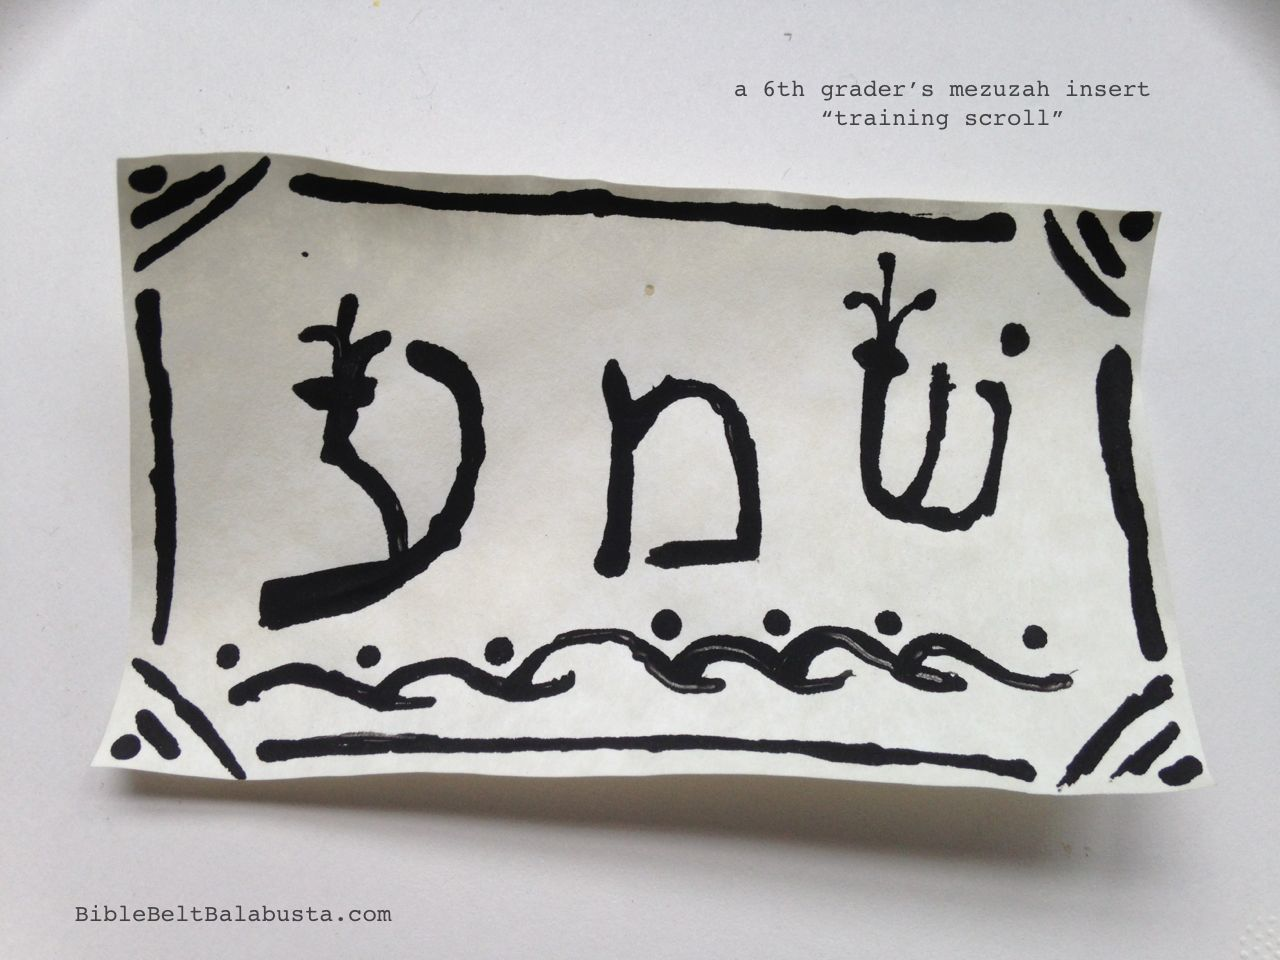 picture about Mezuzah Scroll Printable known as Create a Mezuzah Scroll Bible Belt Balabusta